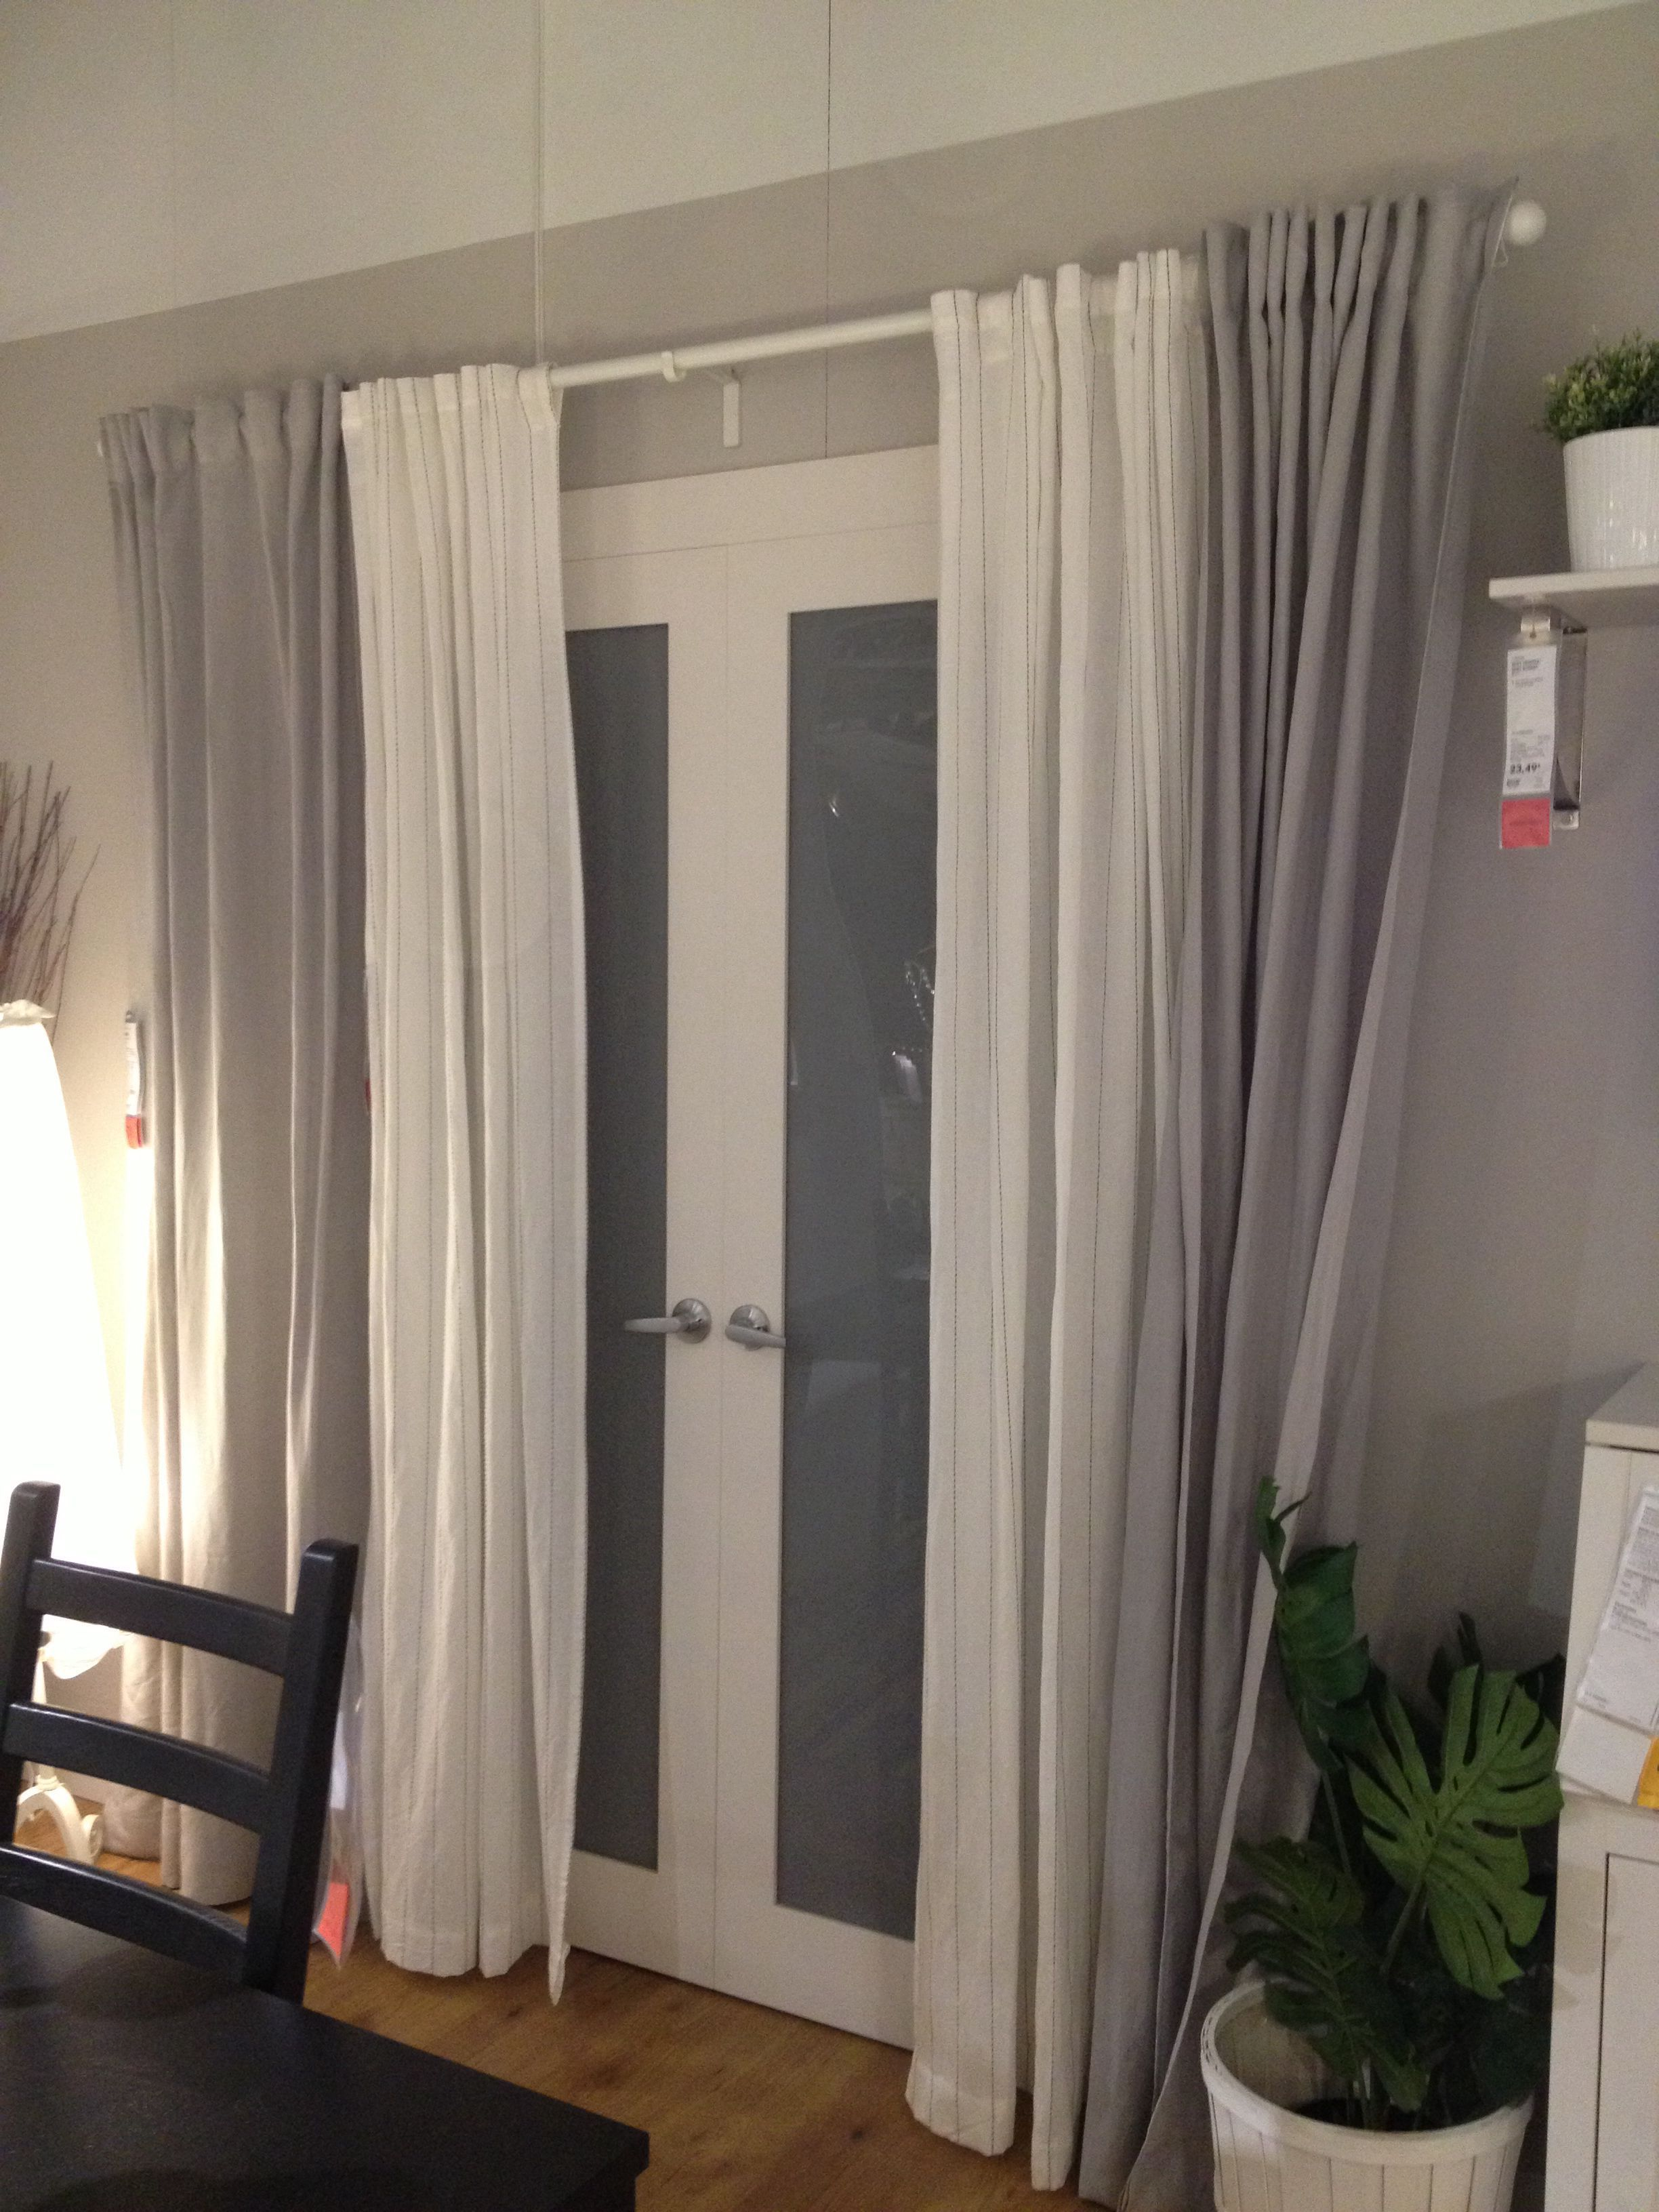 Backpatio Door Curtains Let Sunlight In During The Day